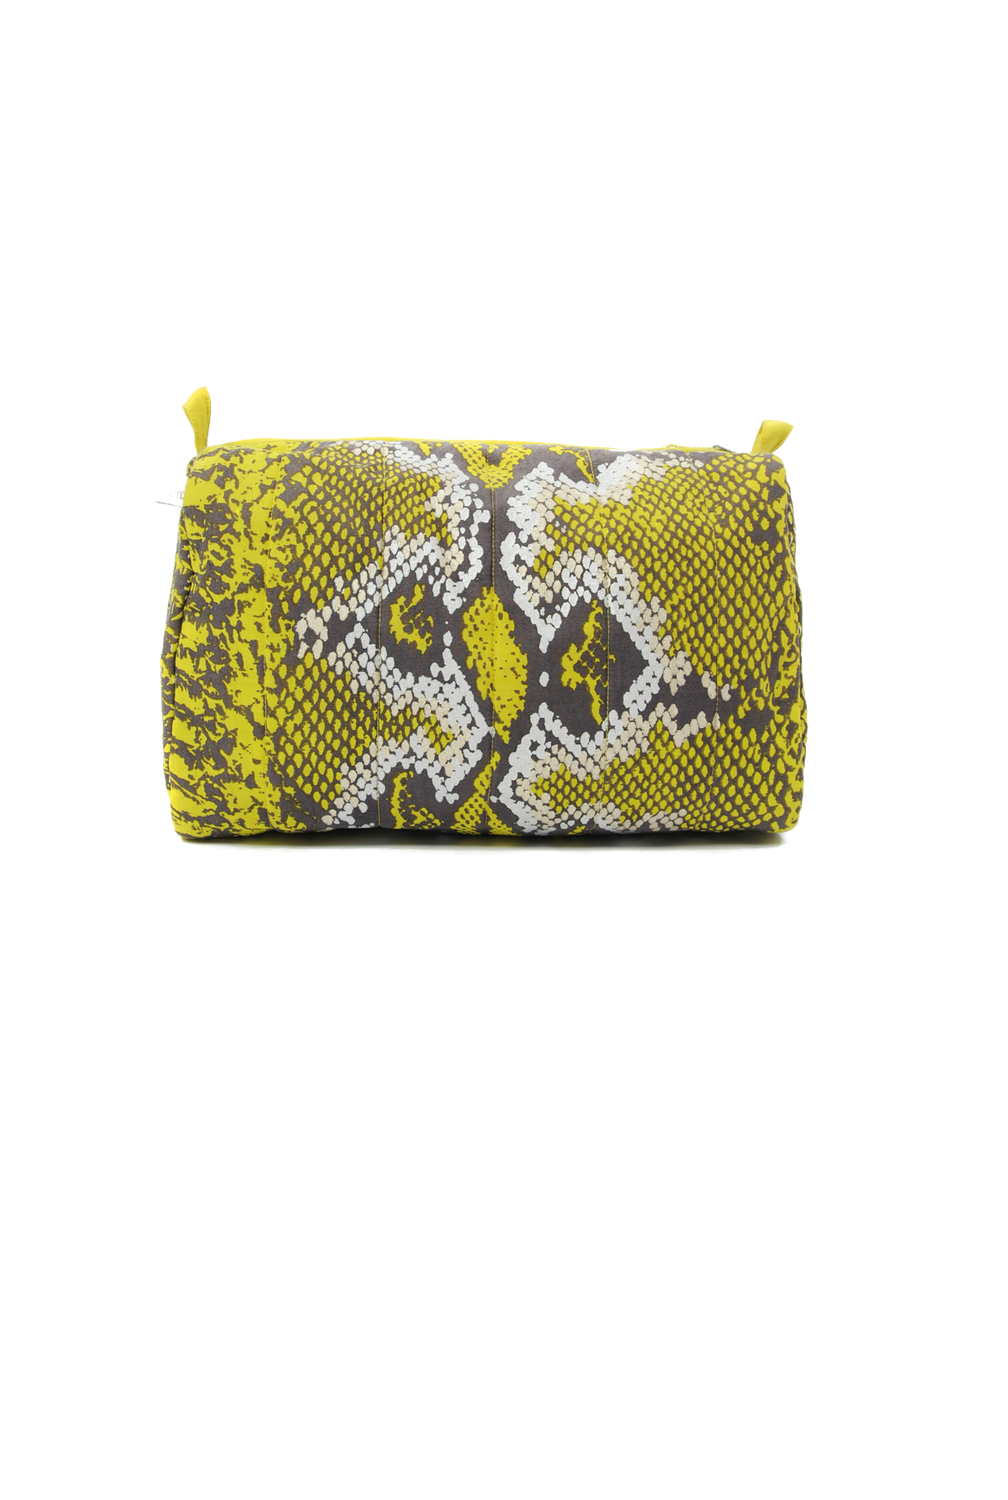 mercy-delta-python-lime-medium-cosmetic-bag